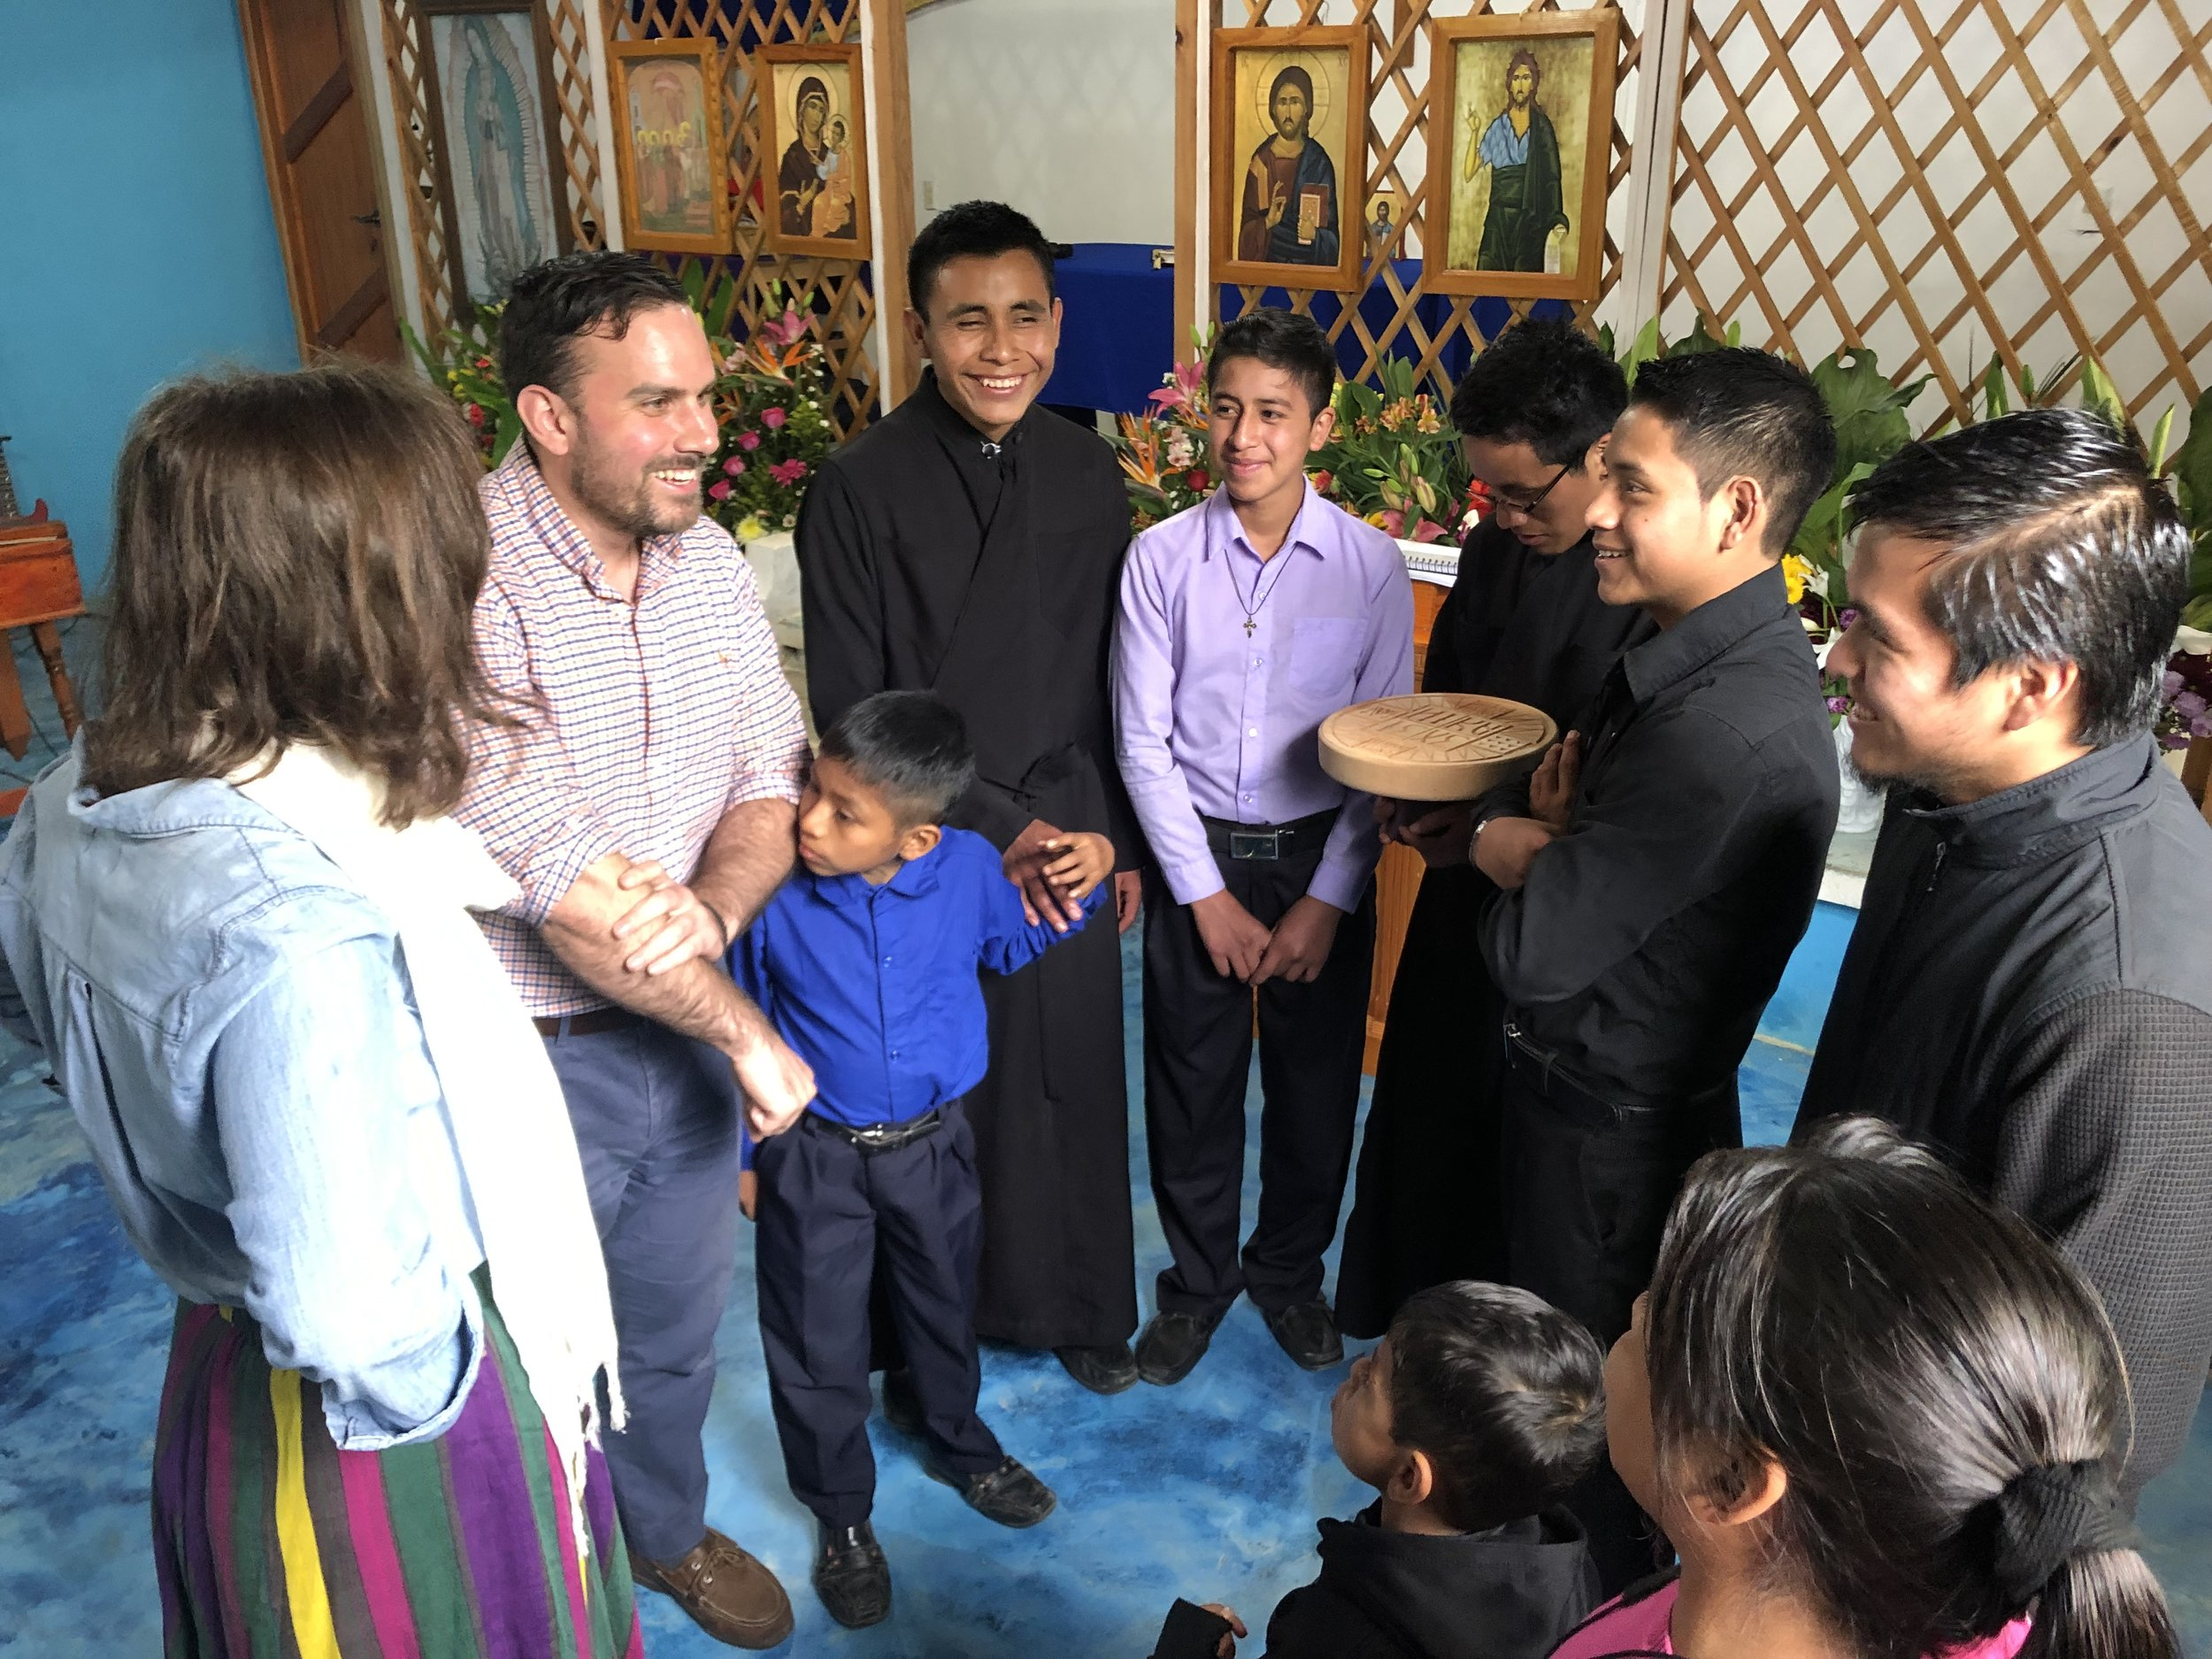 Getting to know the seminarians after Liturgy